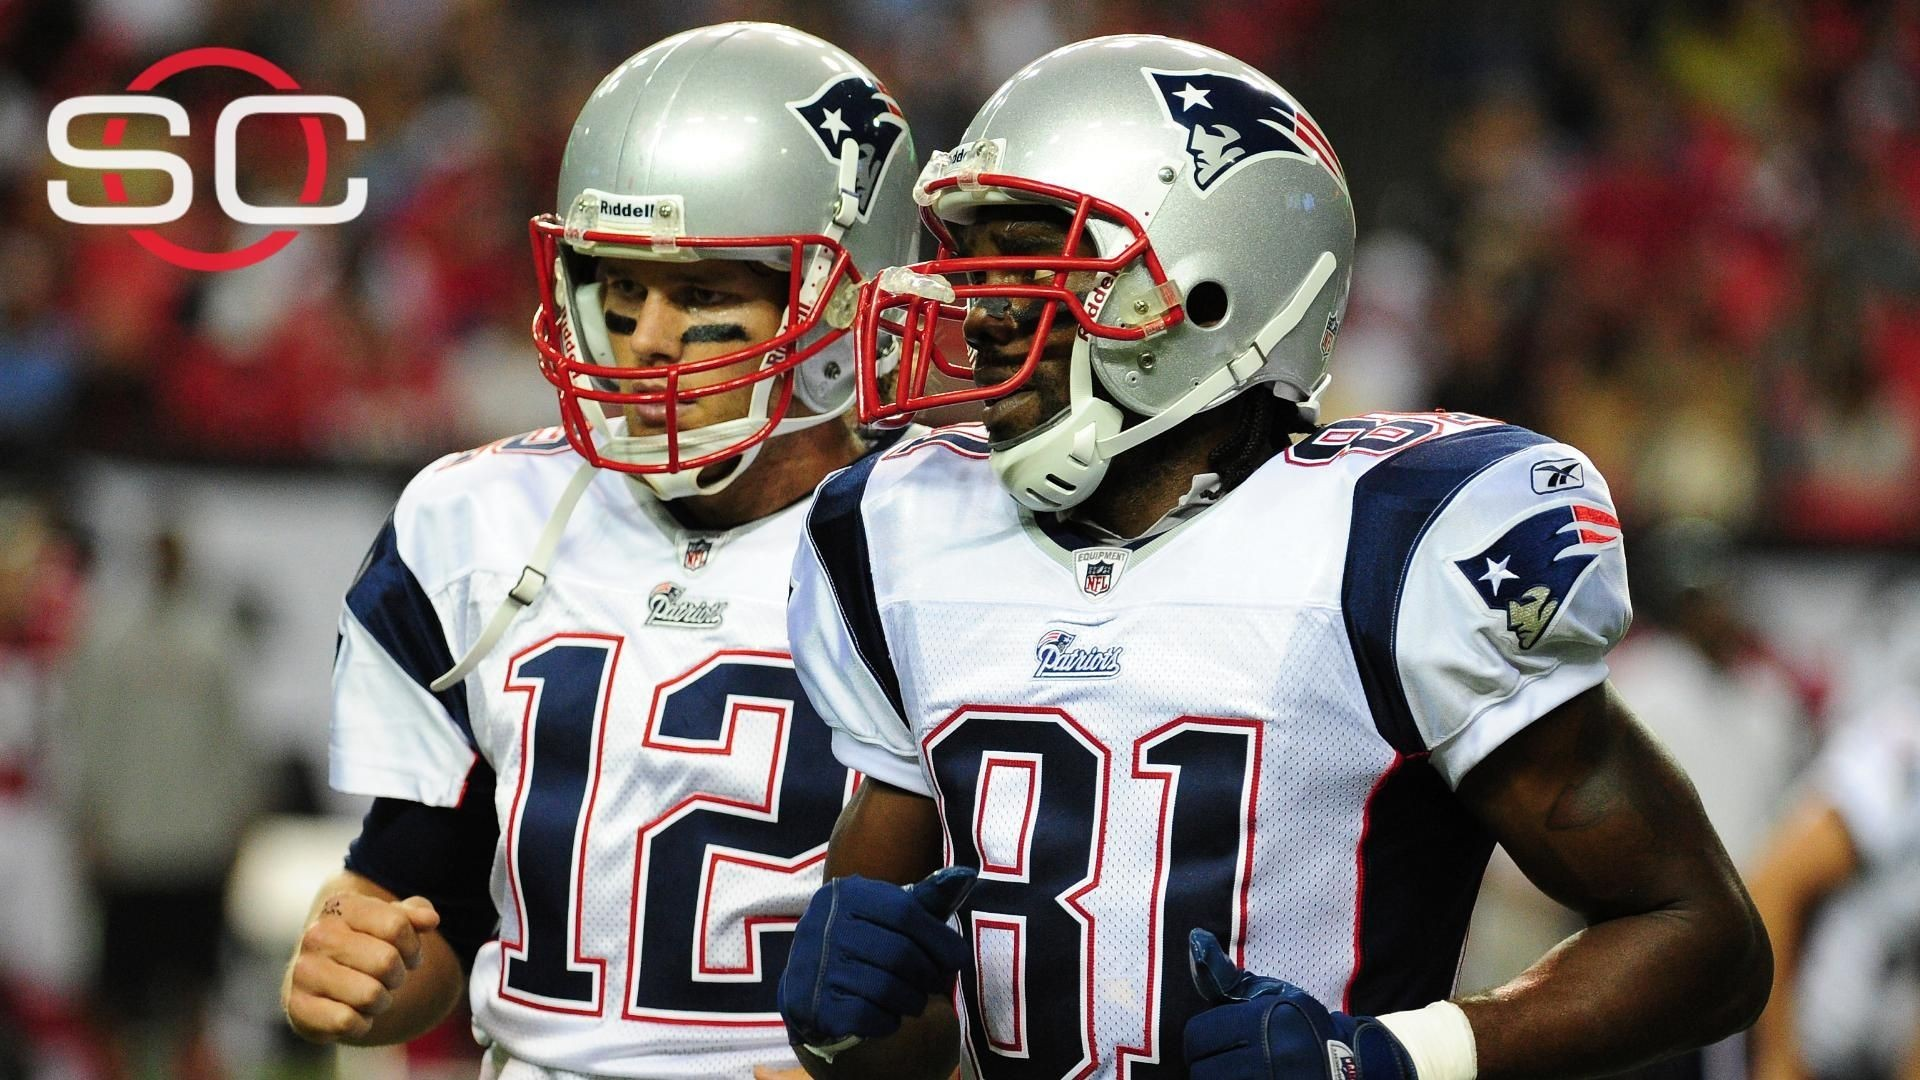 1920x1080 Randy Moss reflects on career: For 14 years, I think I did something right